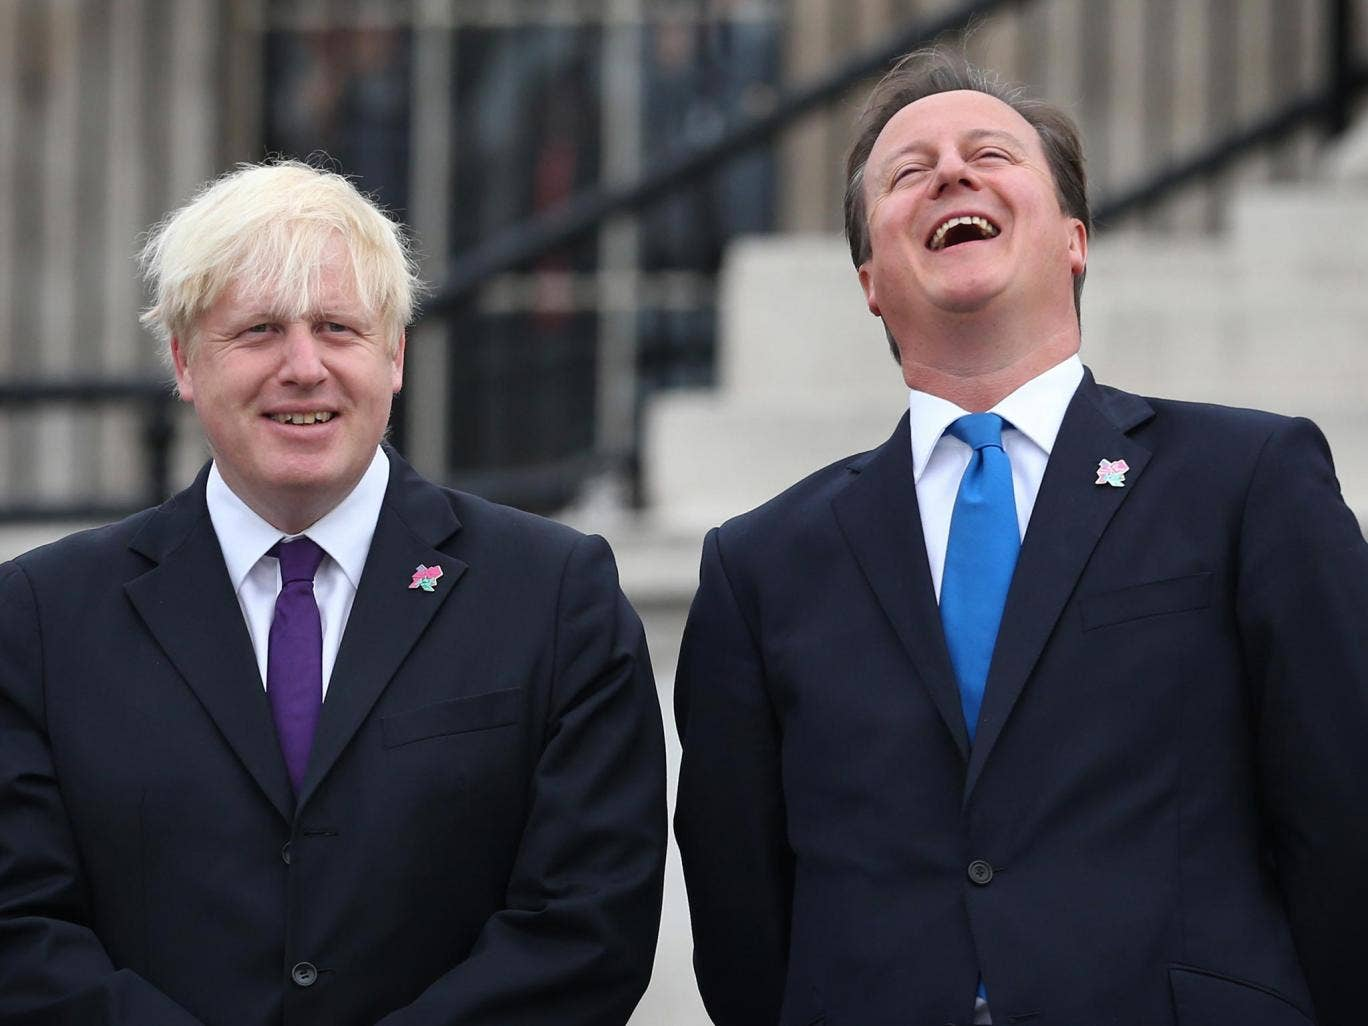 MP Mark Pritchard made his comments following fresh speculation over Boris Johnson's ambitions to succeed David Cameron as Tory Party leader